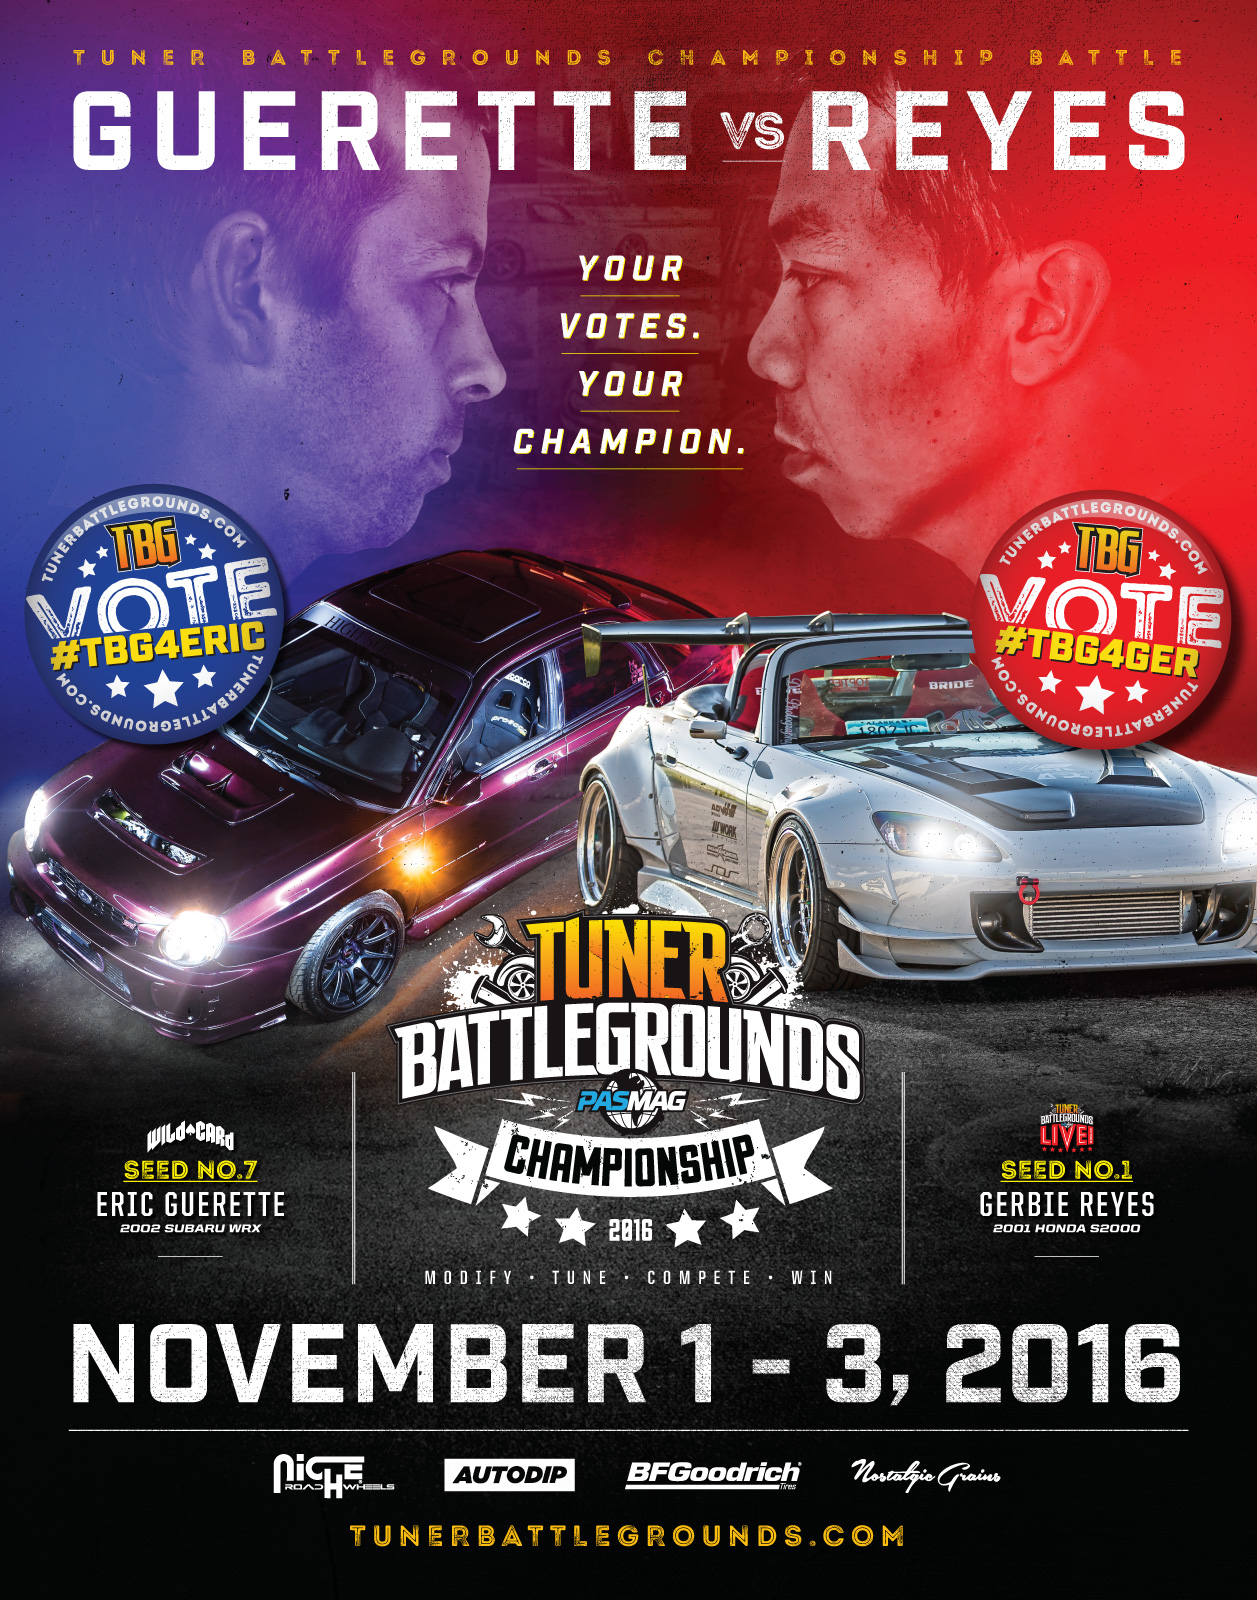 2016 PASMAG Tuner Battlegrounds Championship Poster 22x28 Final